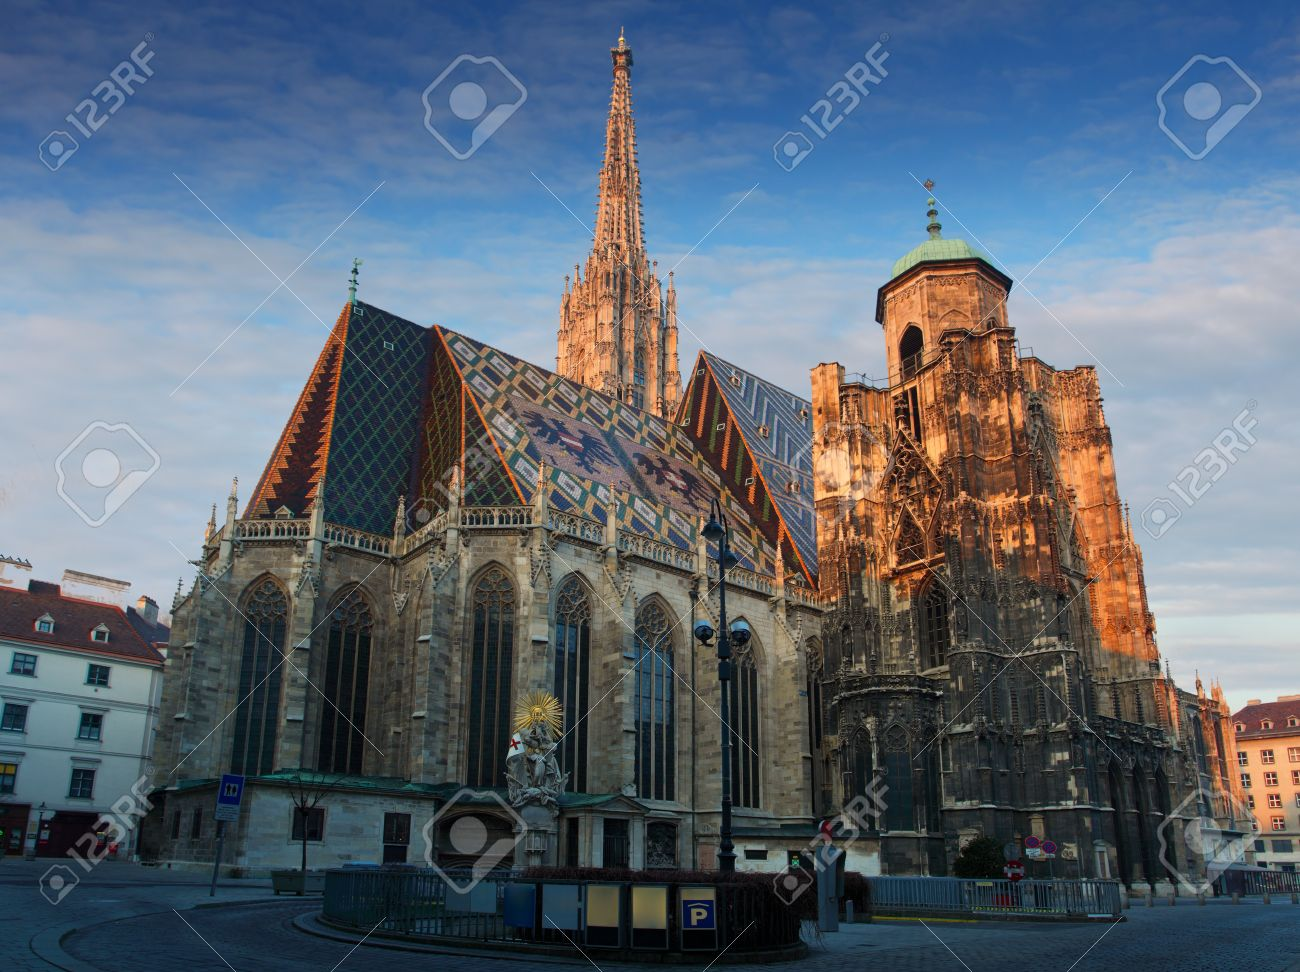 St  Stephan cathedral in Vienna at night, Austria Stock Photo - 12775842